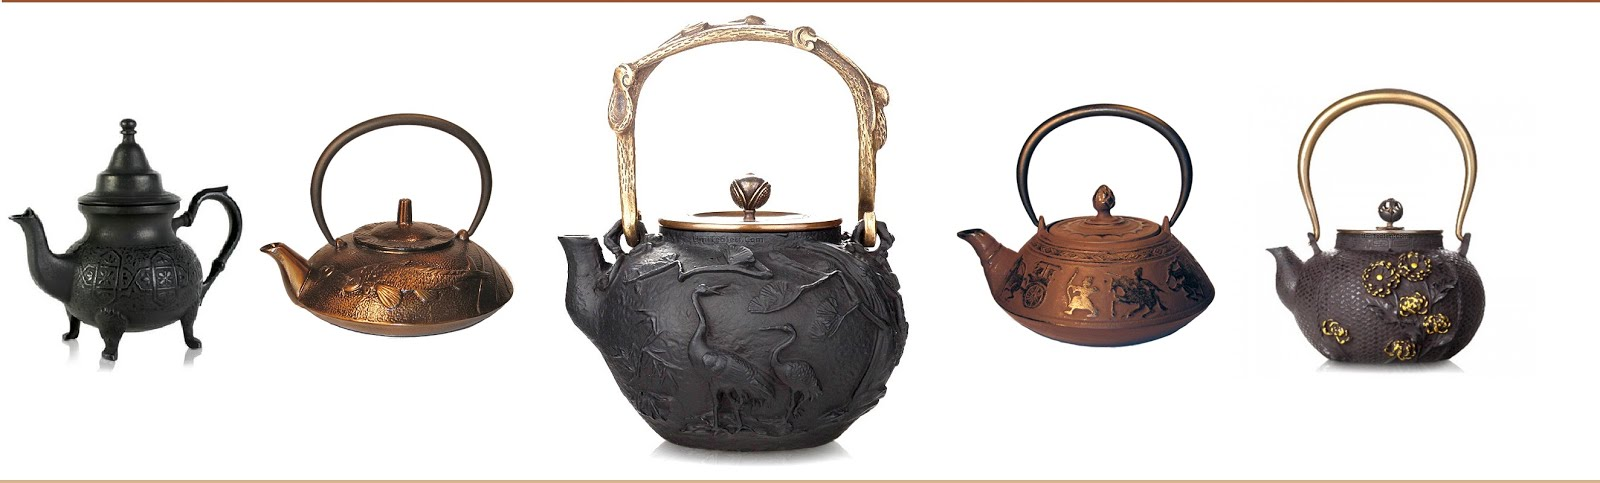 IRON AND BRONZE TEAPOTS